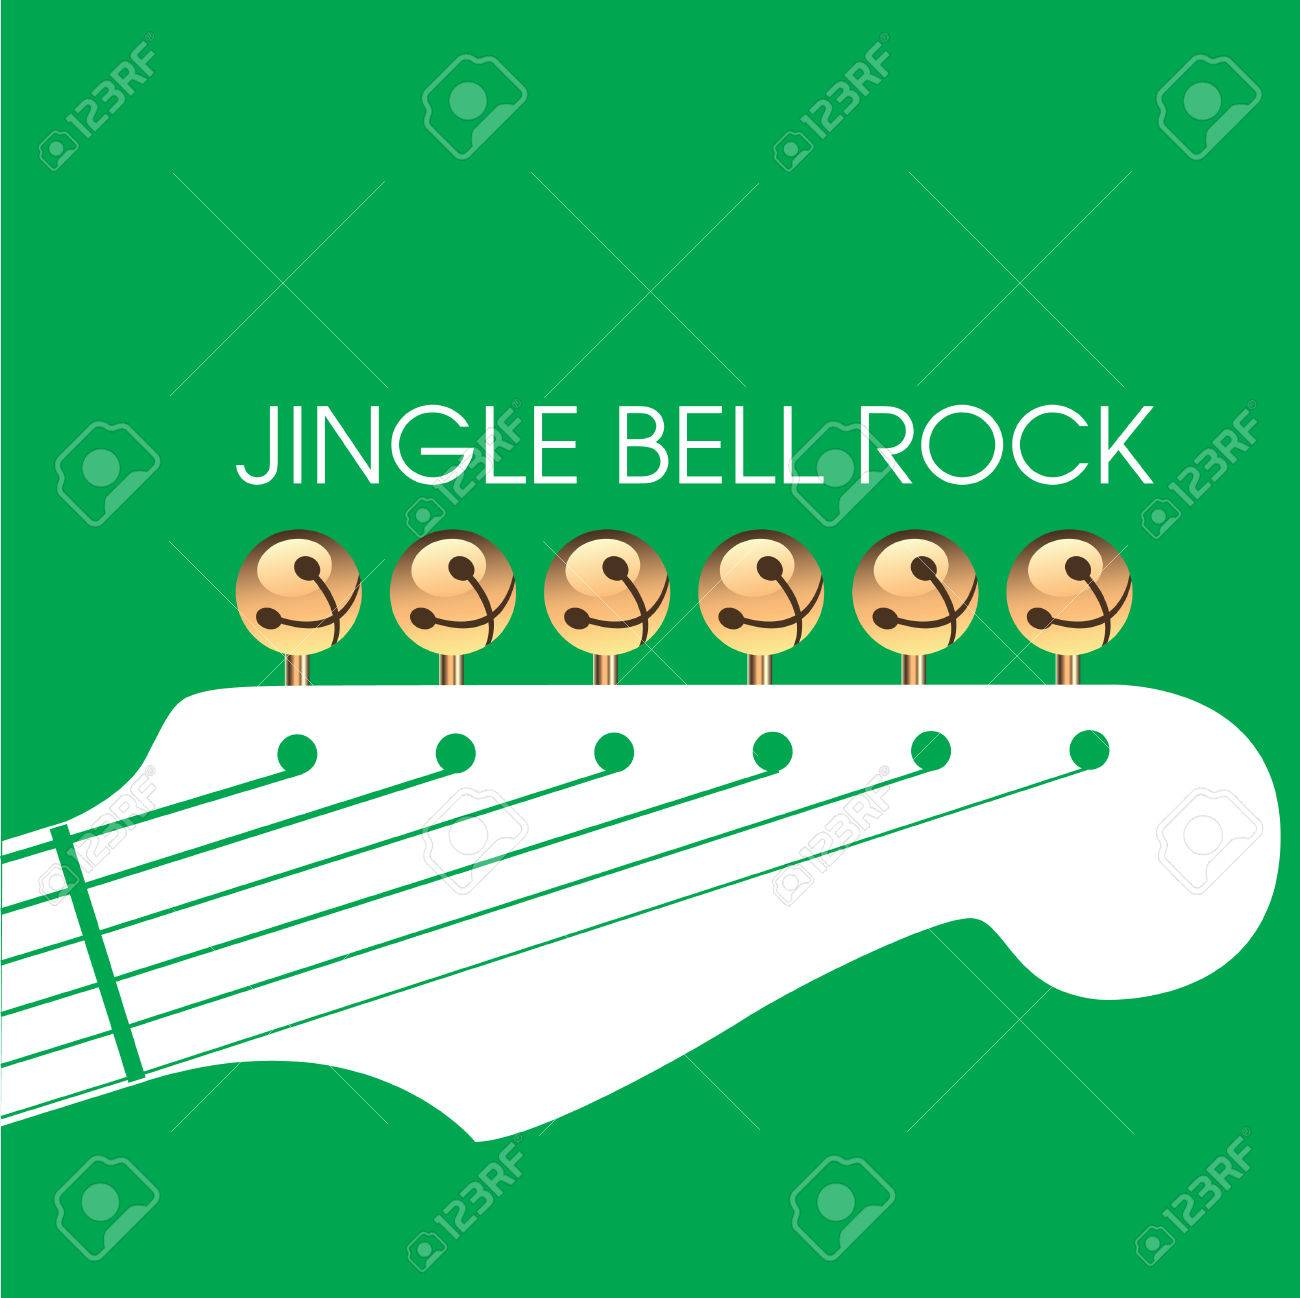 graphic of bells on guitar to illustrate jingle bell rock space for text could